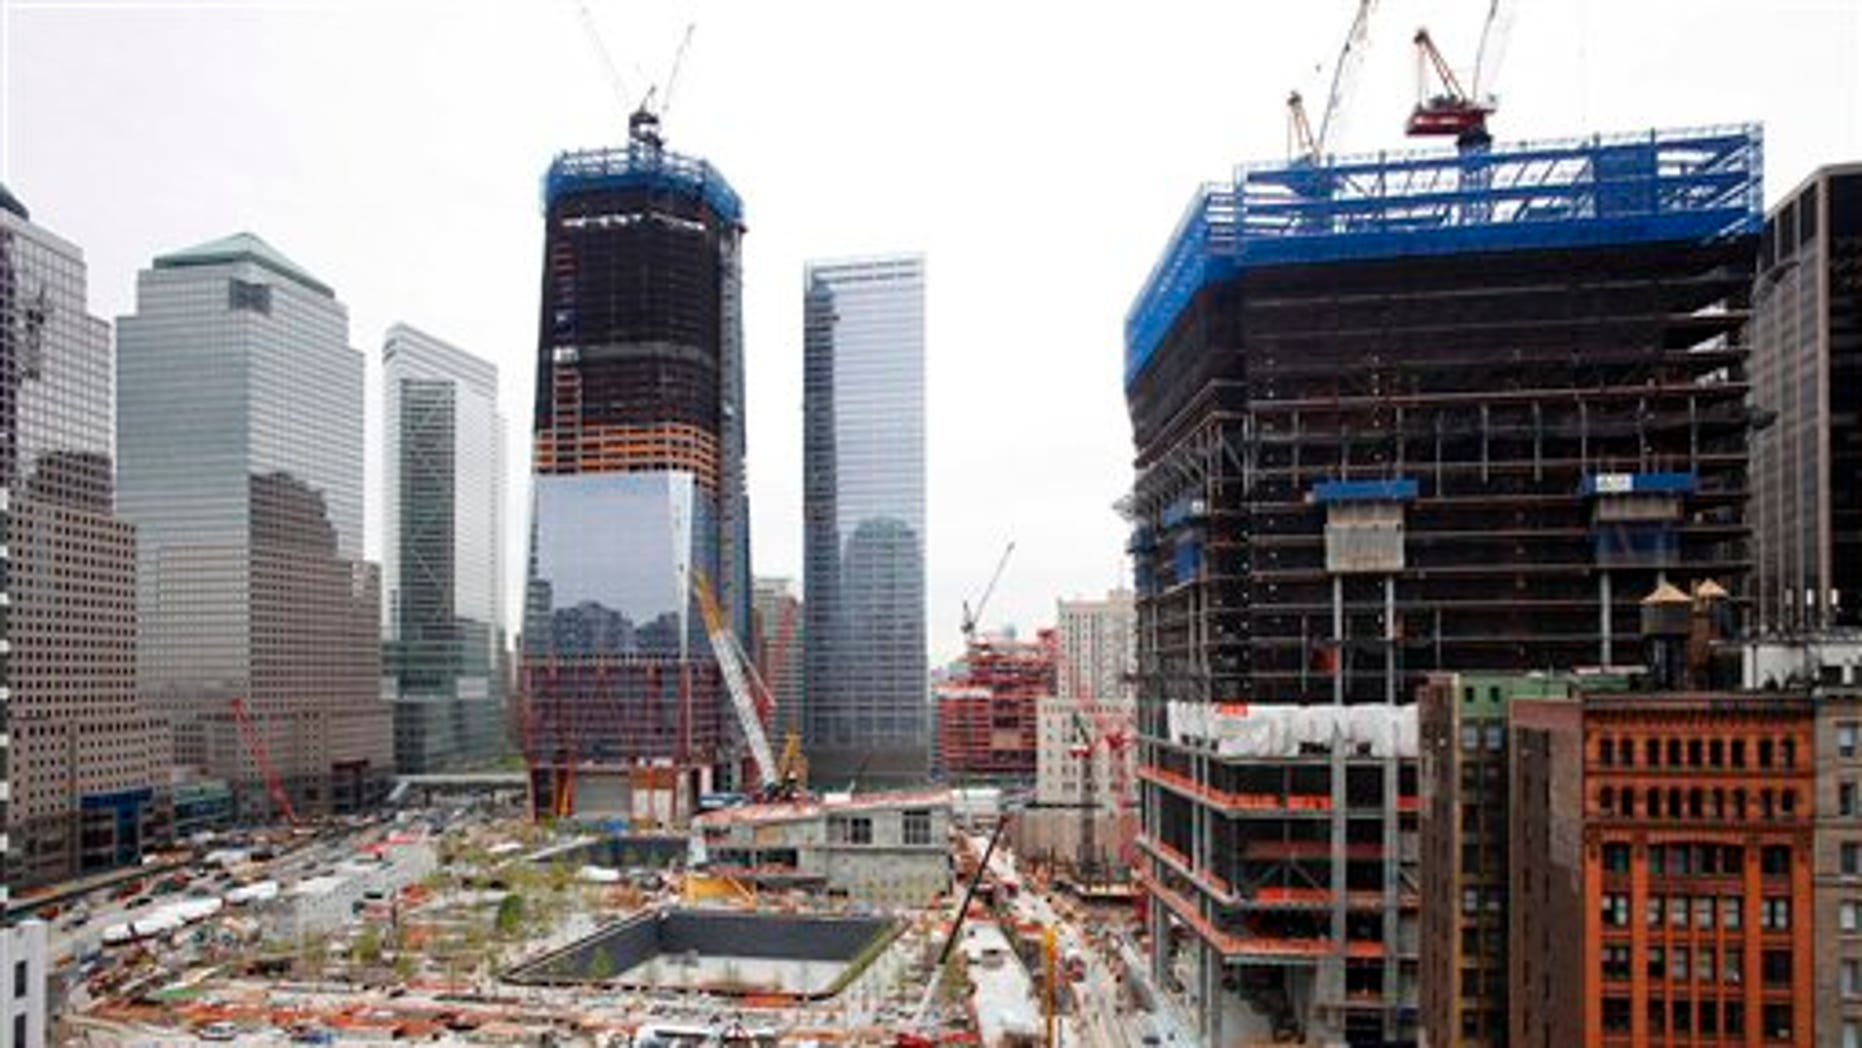 May 2: Work continues at the World Trade Center site and the Freedom Tower in New York.